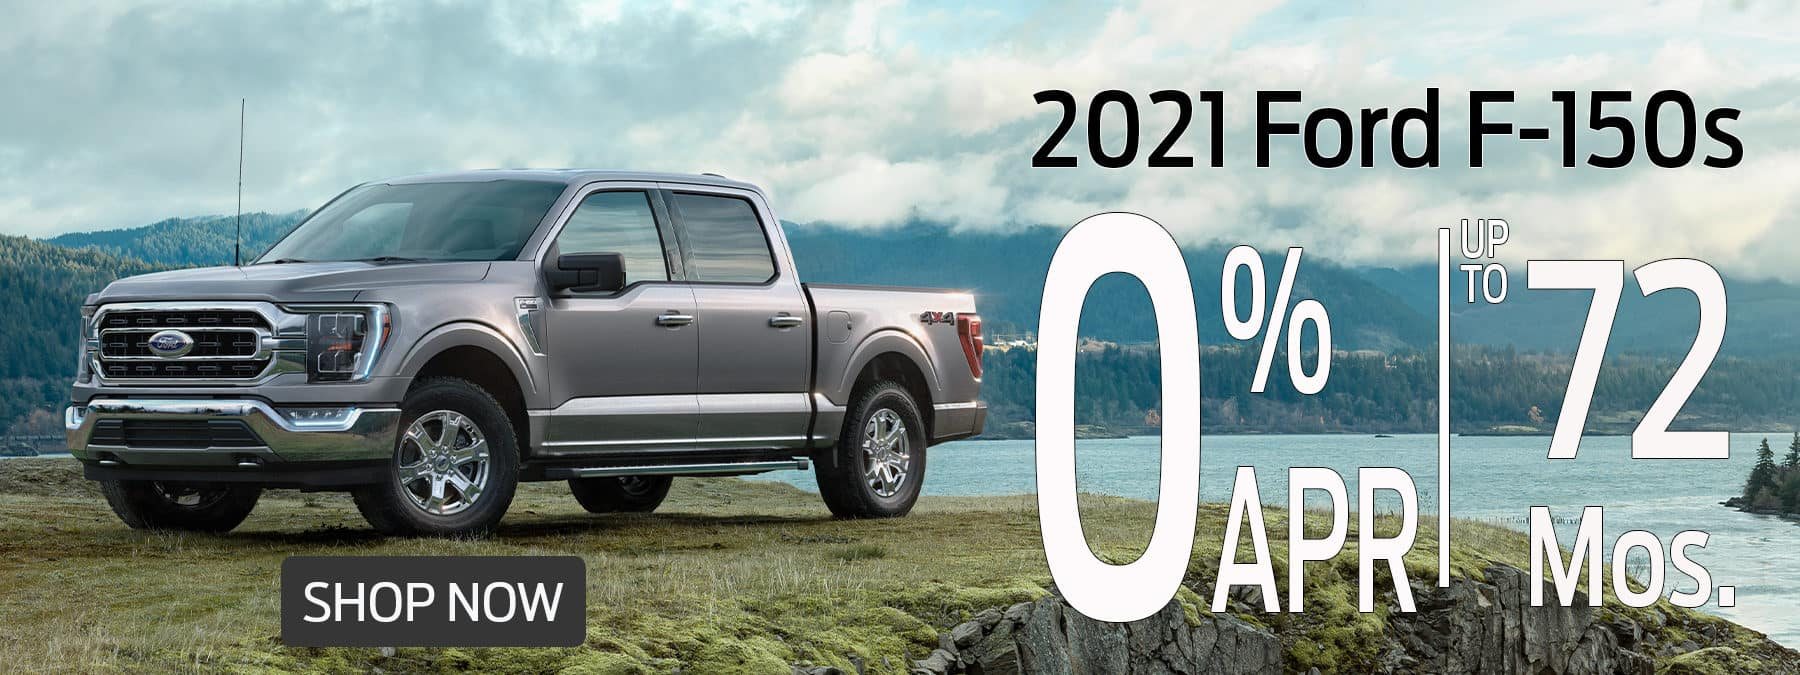 2021 F-150 Special Lease Offer